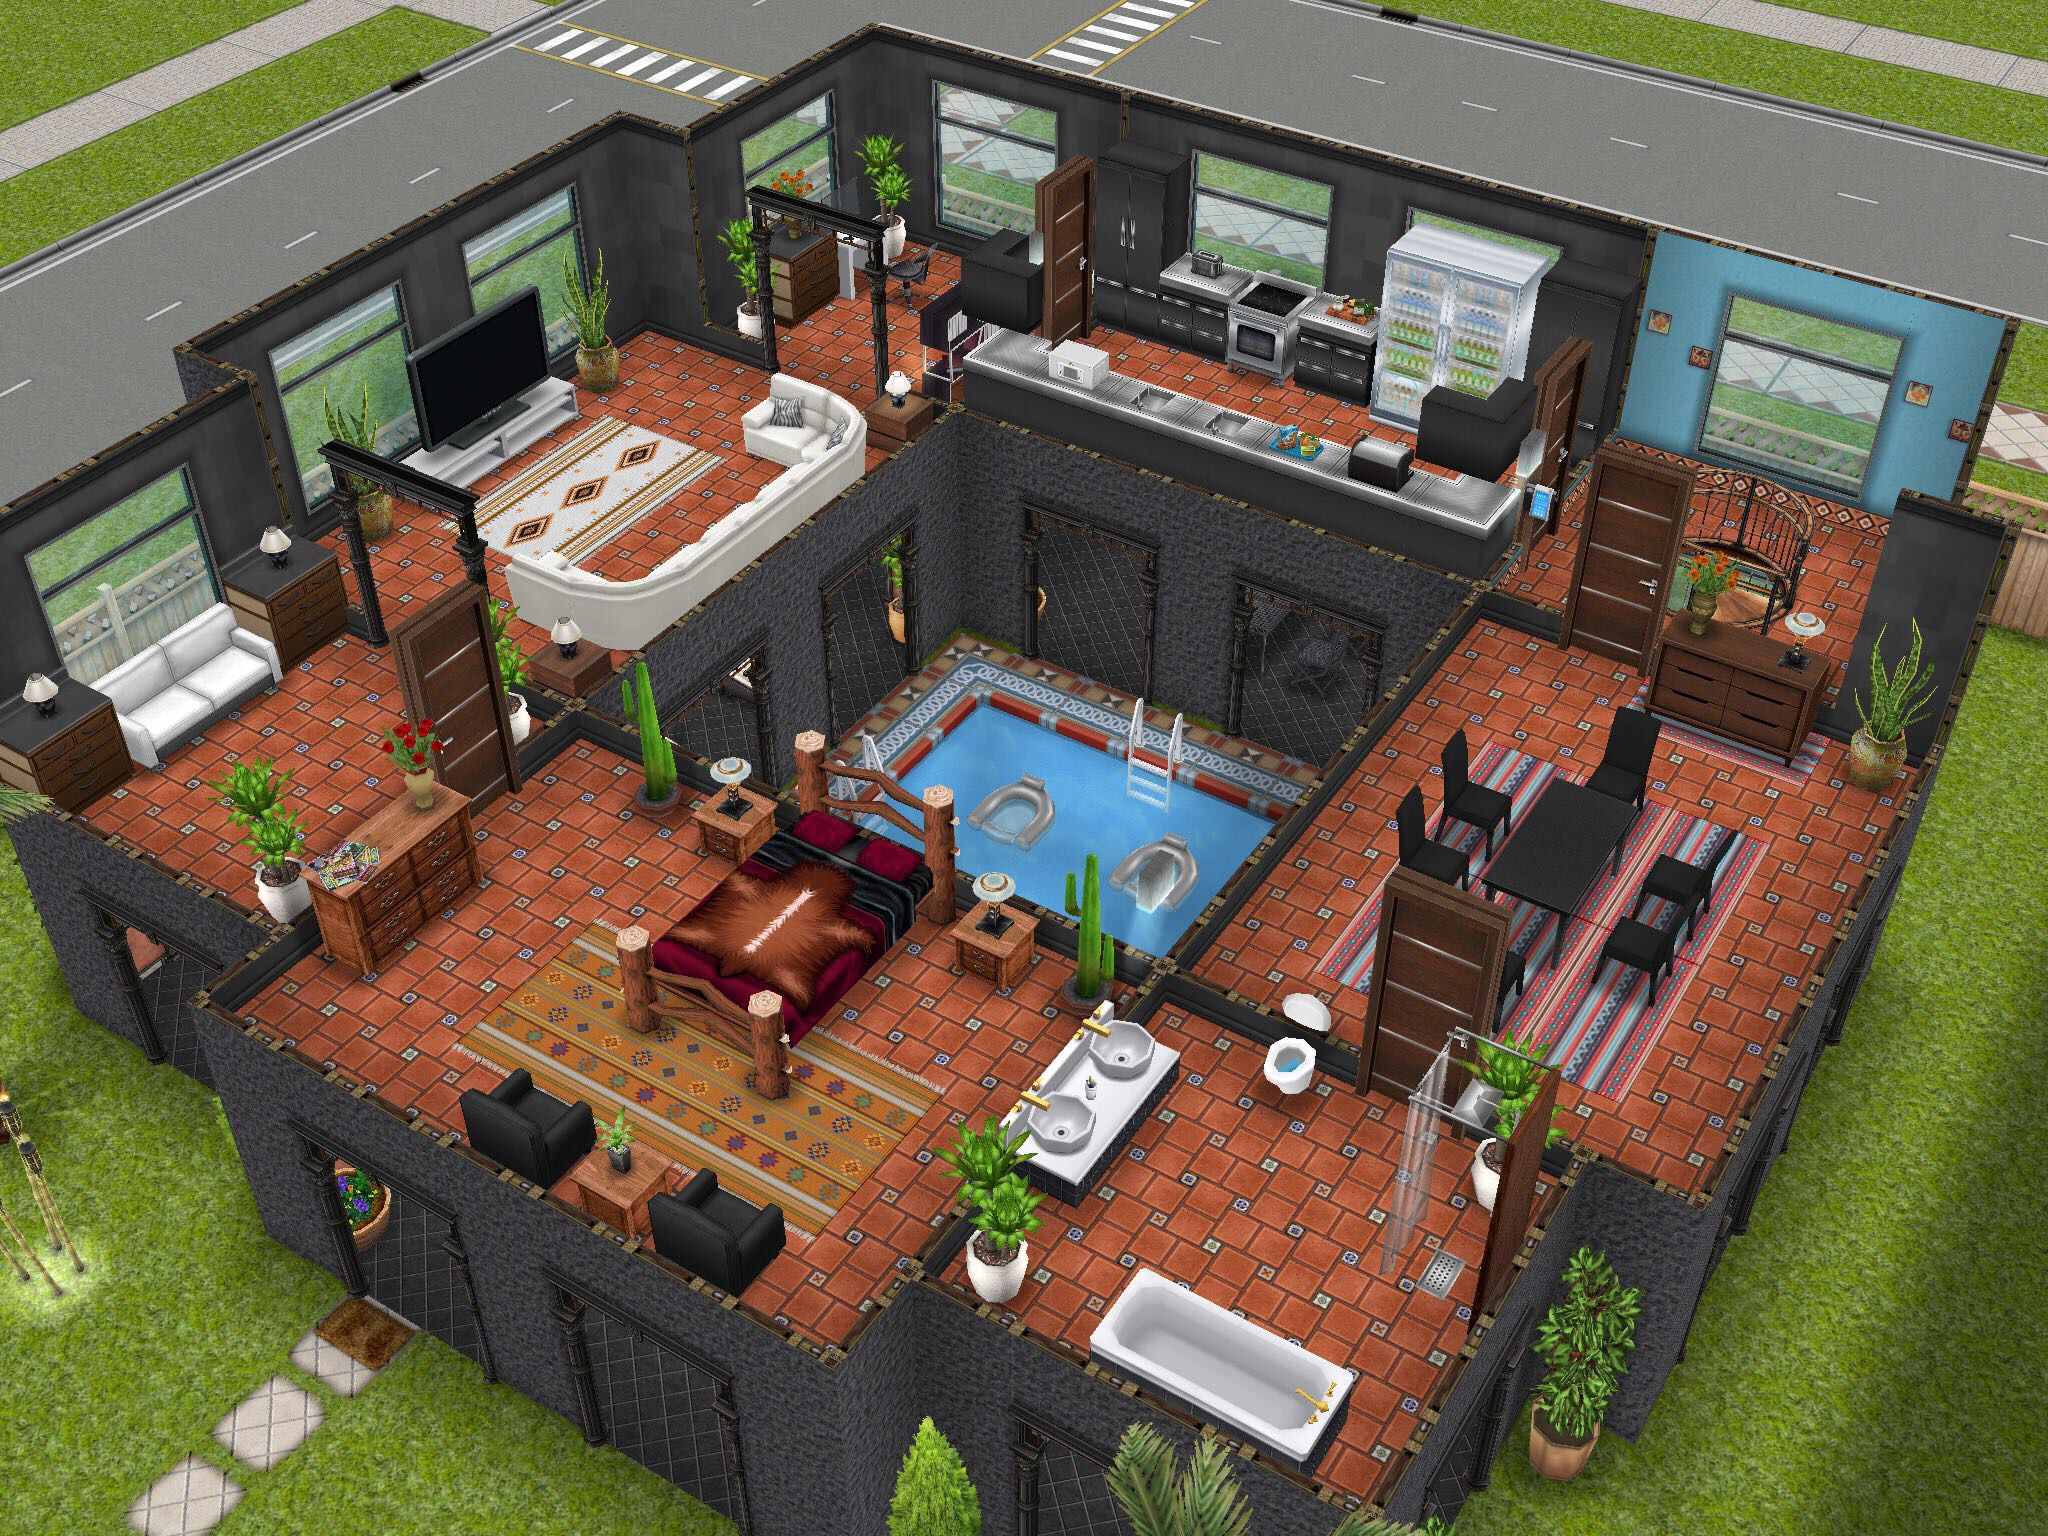 Variation On Stilts House Design I Saw On Pinterest Thesims Freeplay Simsfreeplay 2 3 Sims